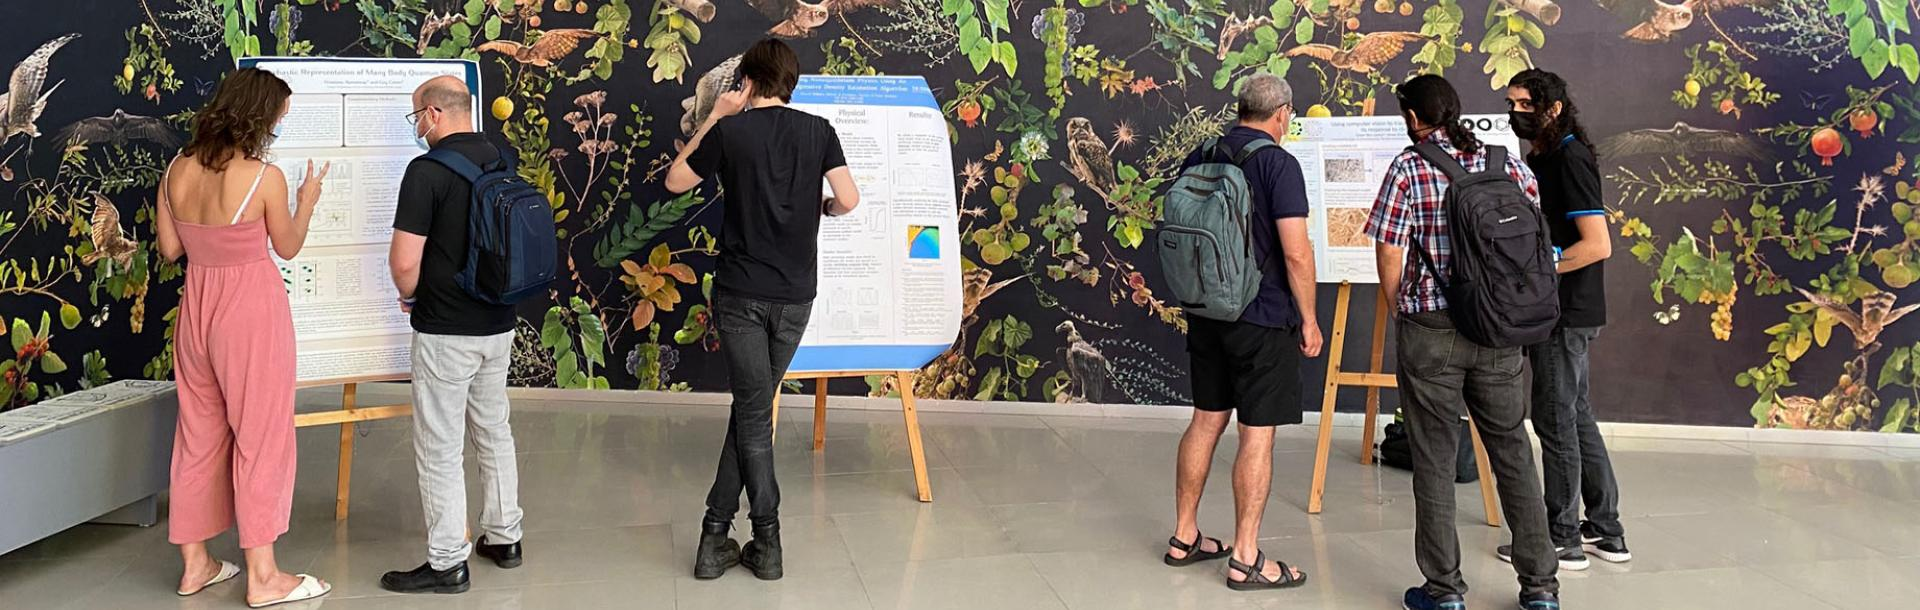 TAD center held the first Meet and Collaborate event at the Tel Aviv University Art Gallery